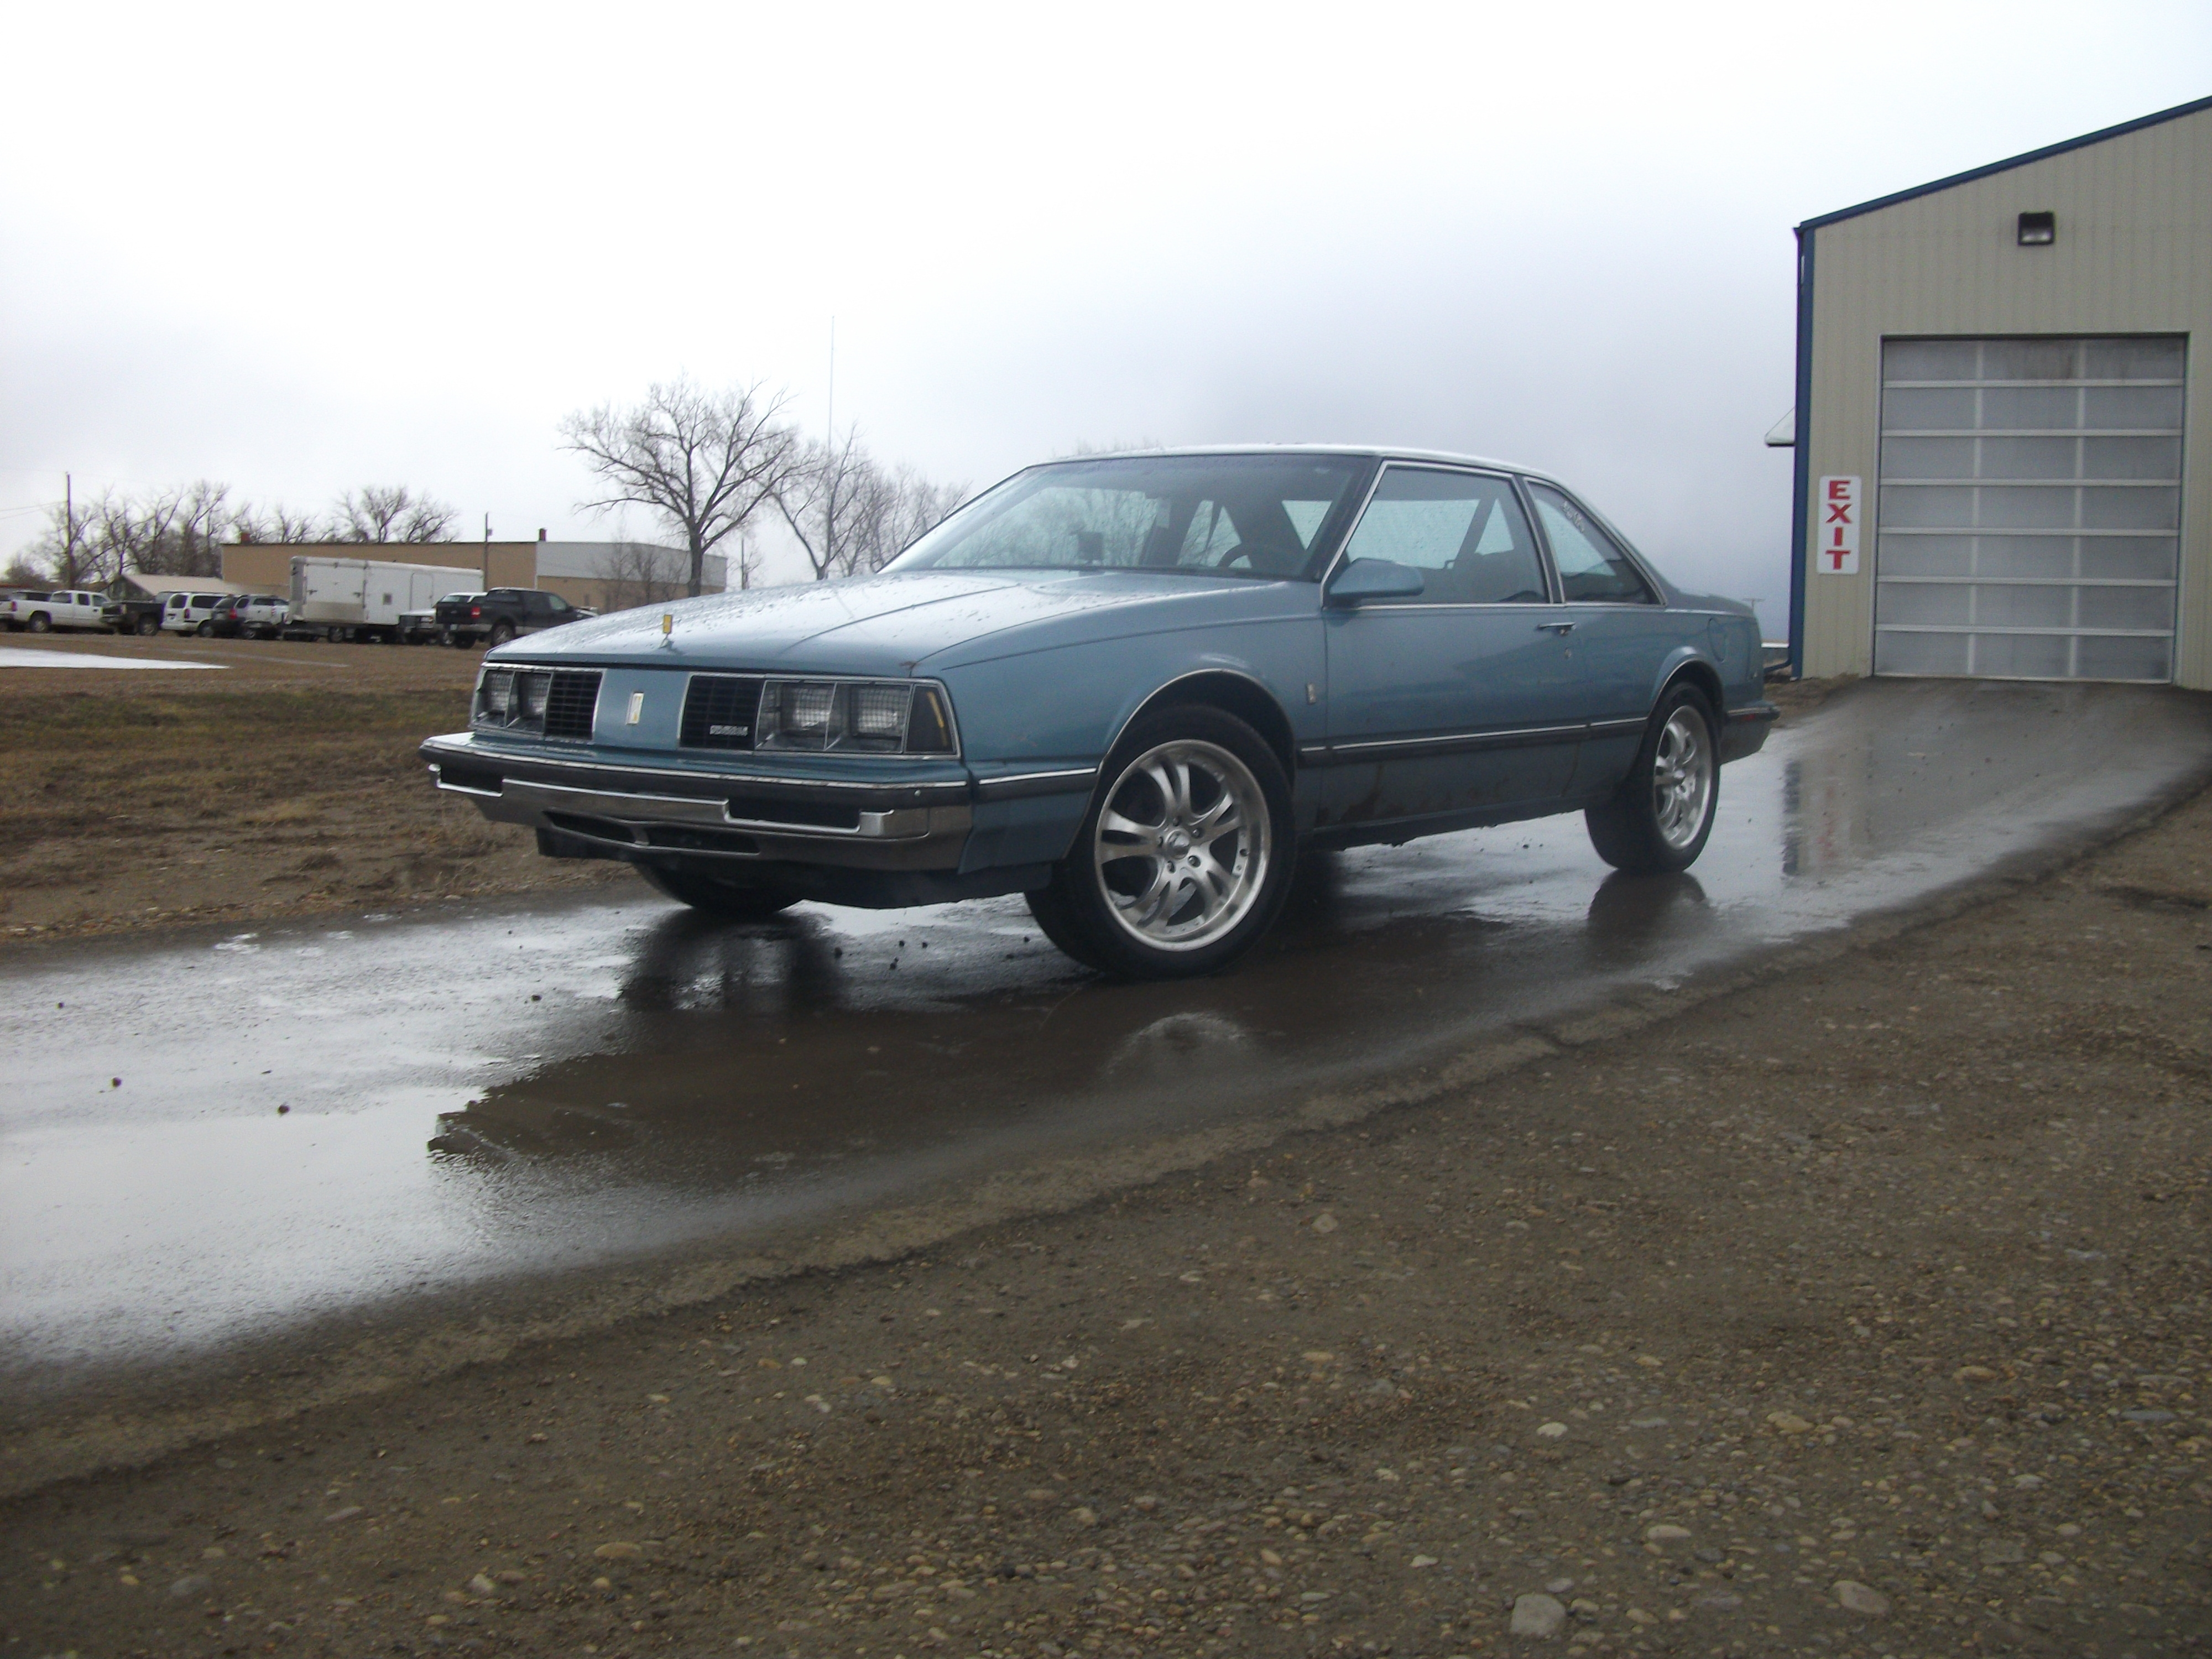 LuxuryOrNothin's 1986 Oldsmobile Delta 88